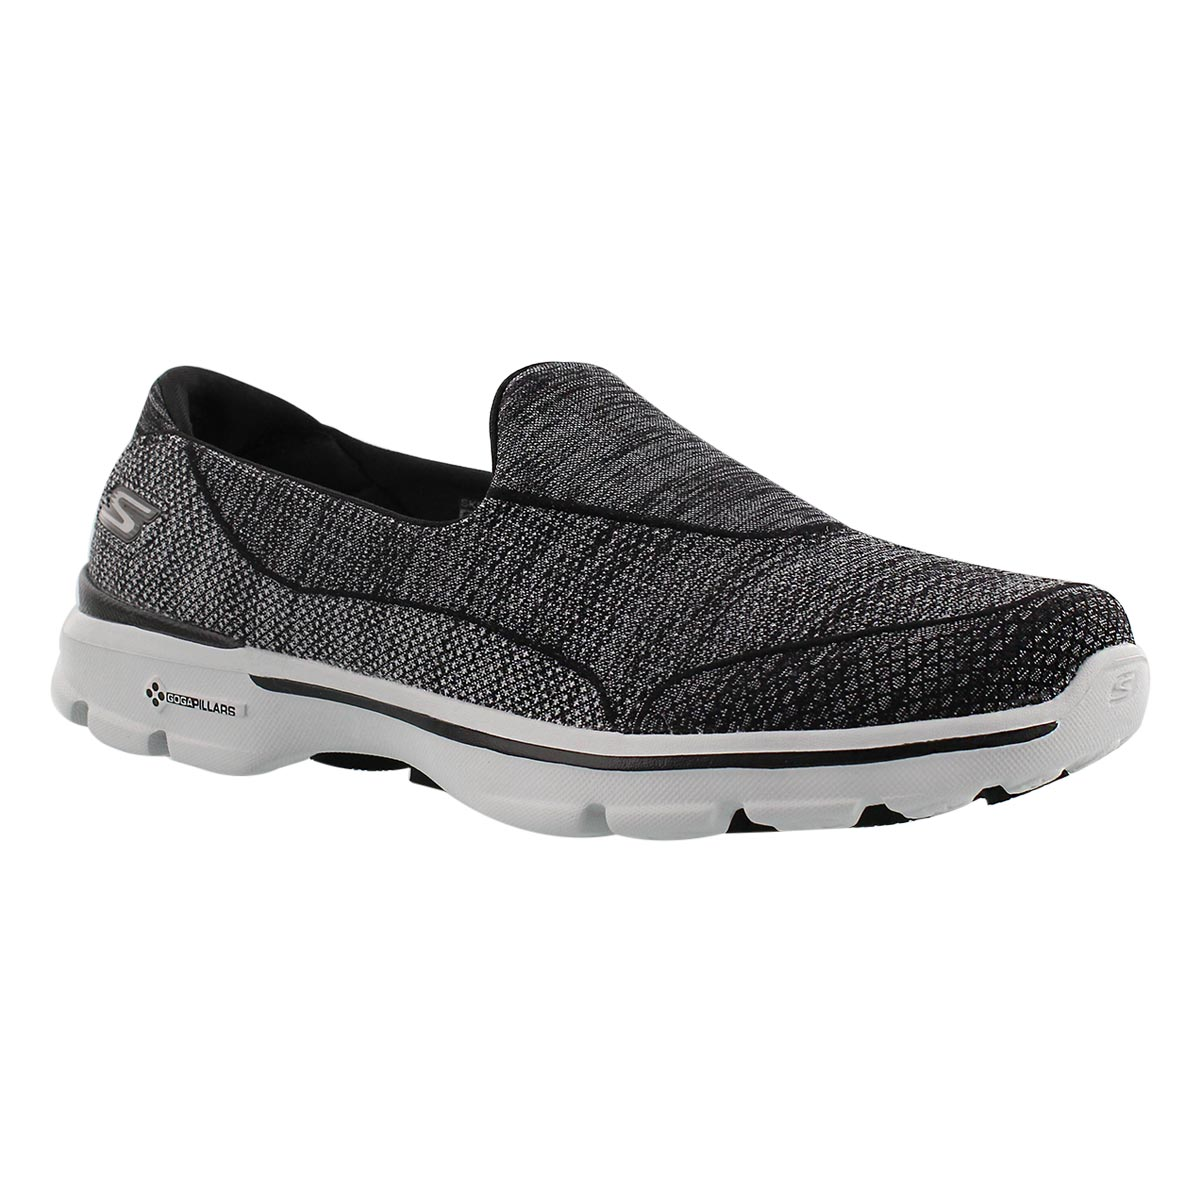 Lds Super Sock 3 blk/gry walking shoe